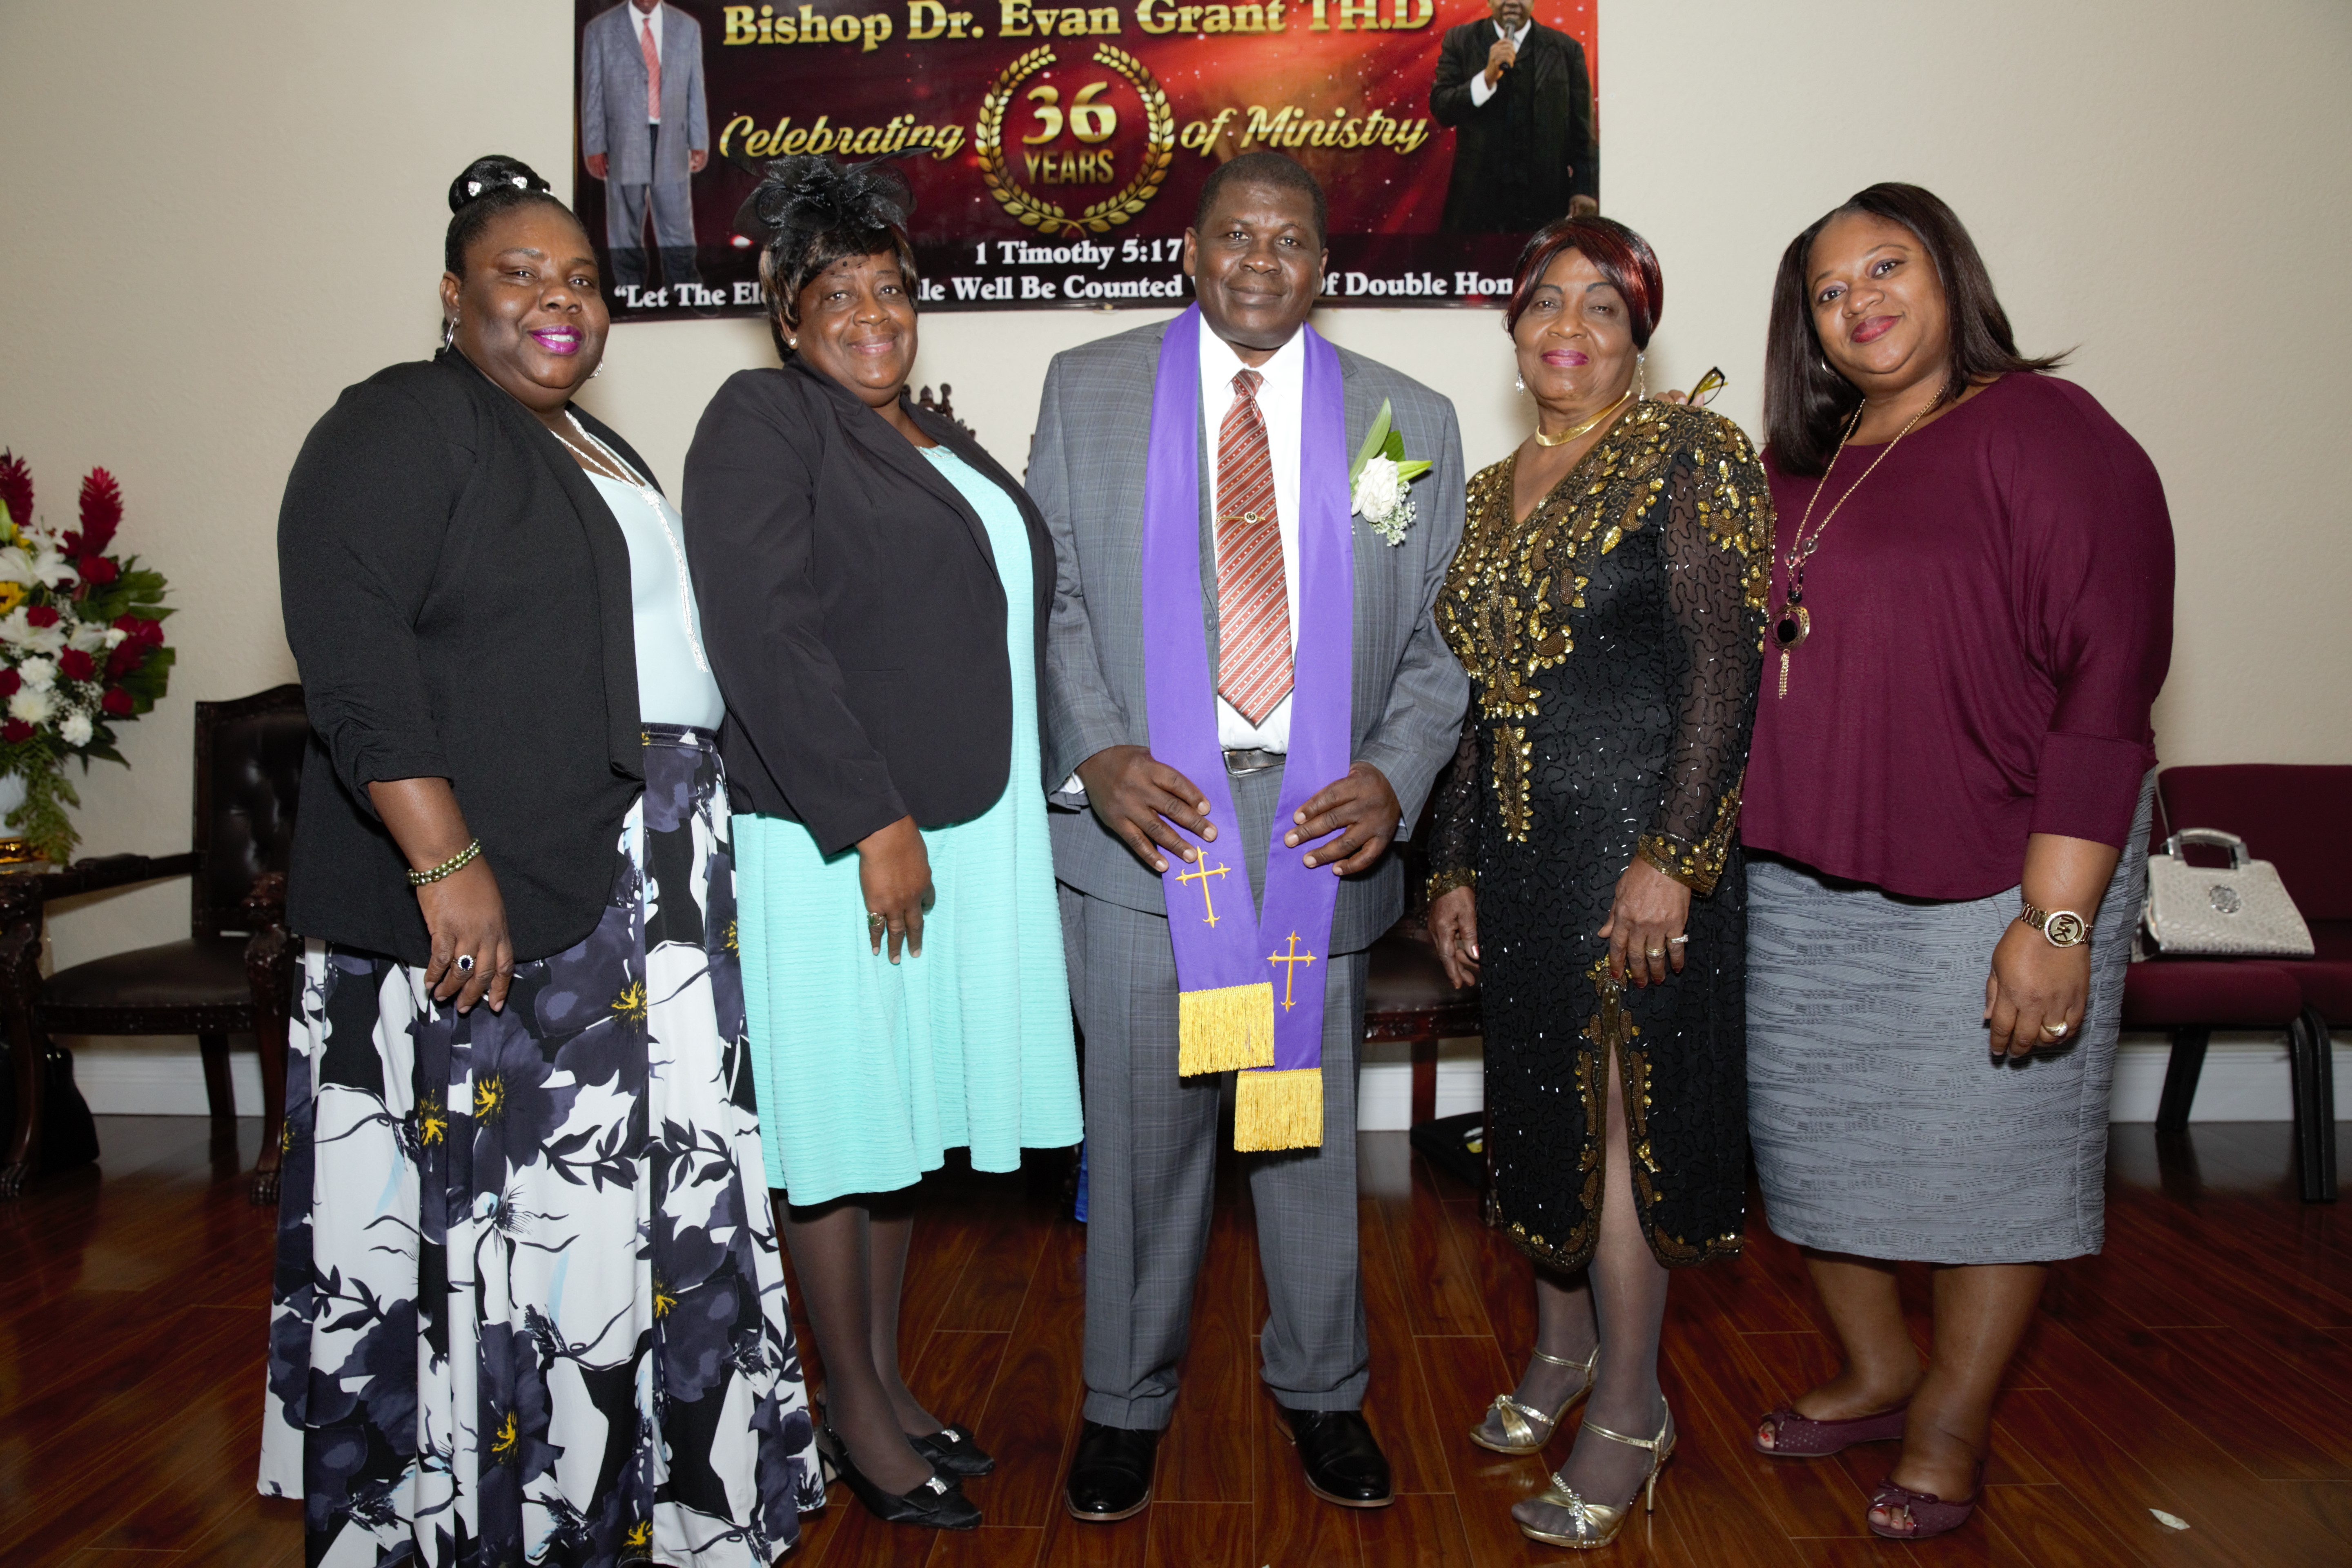 Bishop Dr. Evan Grant TH.D. General Overseer and Clerks